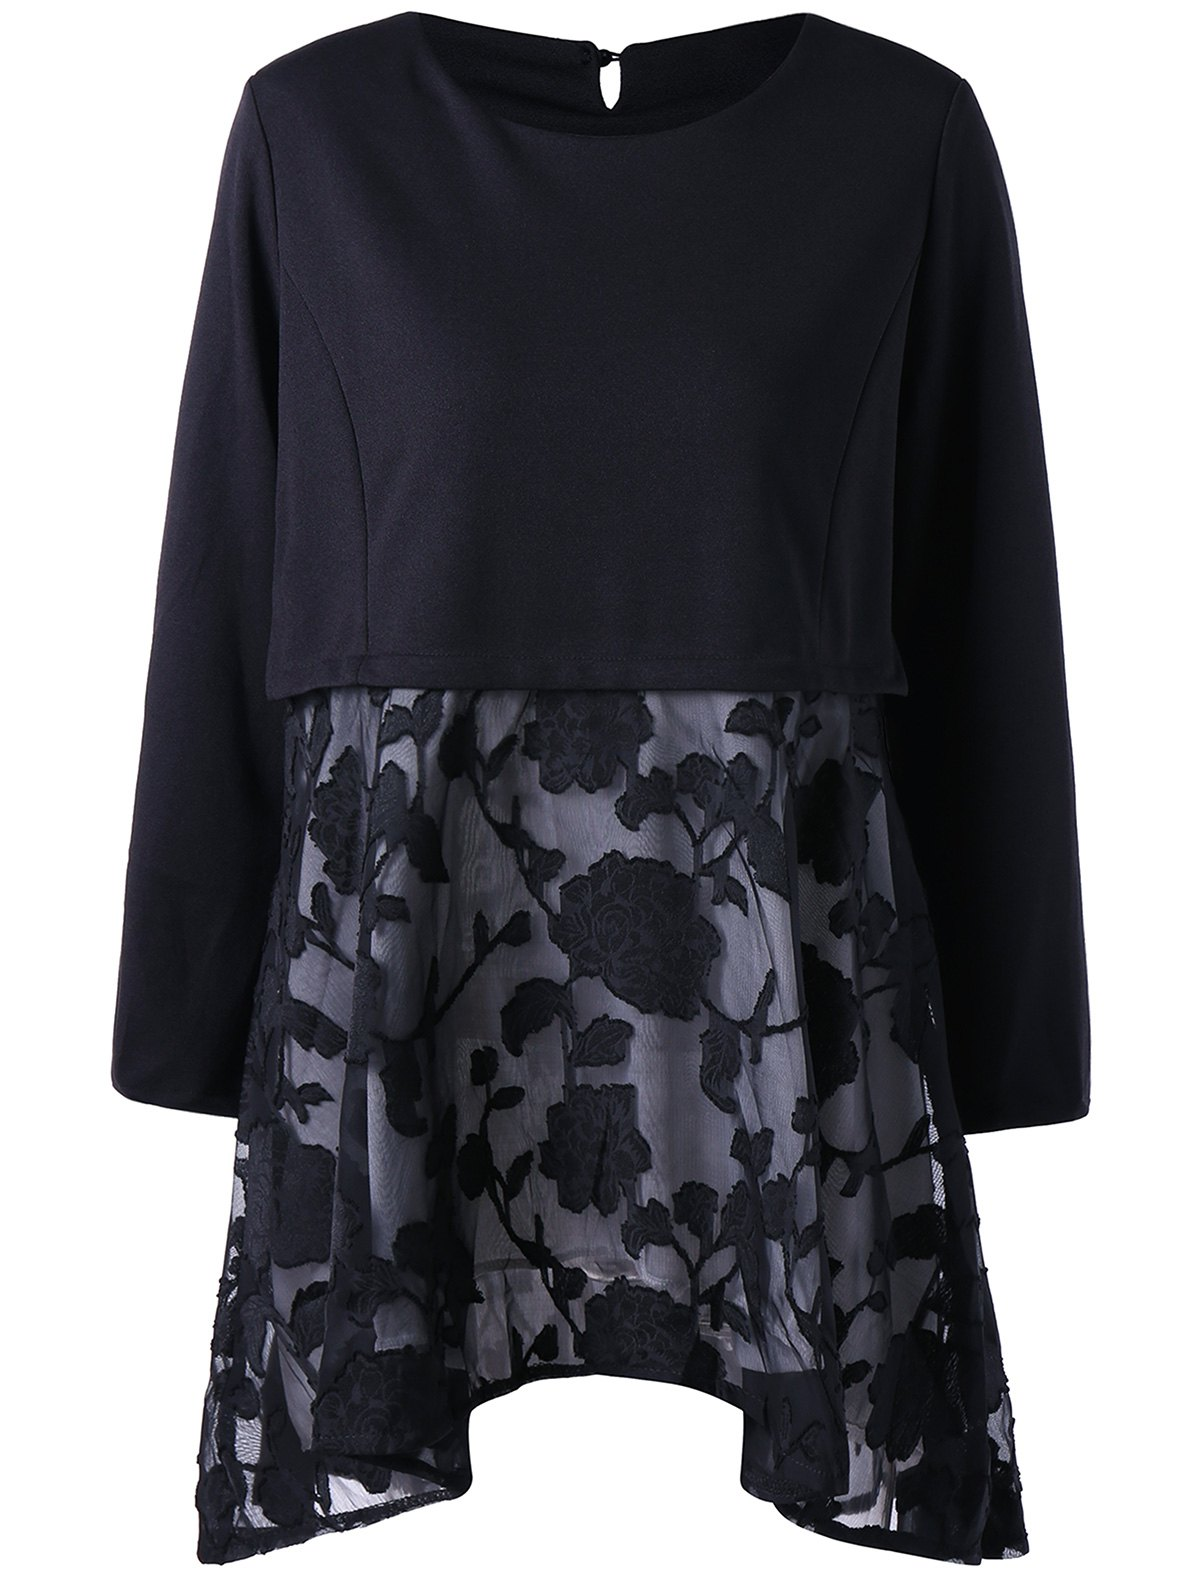 Mesh Panel Embroidery Plus Size Tunic TopWOMEN<br><br>Size: 5XL; Color: BLACK; Material: Polyester,Spandex; Shirt Length: Long; Sleeve Length: Full; Collar: Round Neck; Style: Fashion; Season: Fall,Spring; Embellishment: Embroidery; Pattern Type: Solid; Weight: 0.3700kg; Package Contents: 1 x Top;